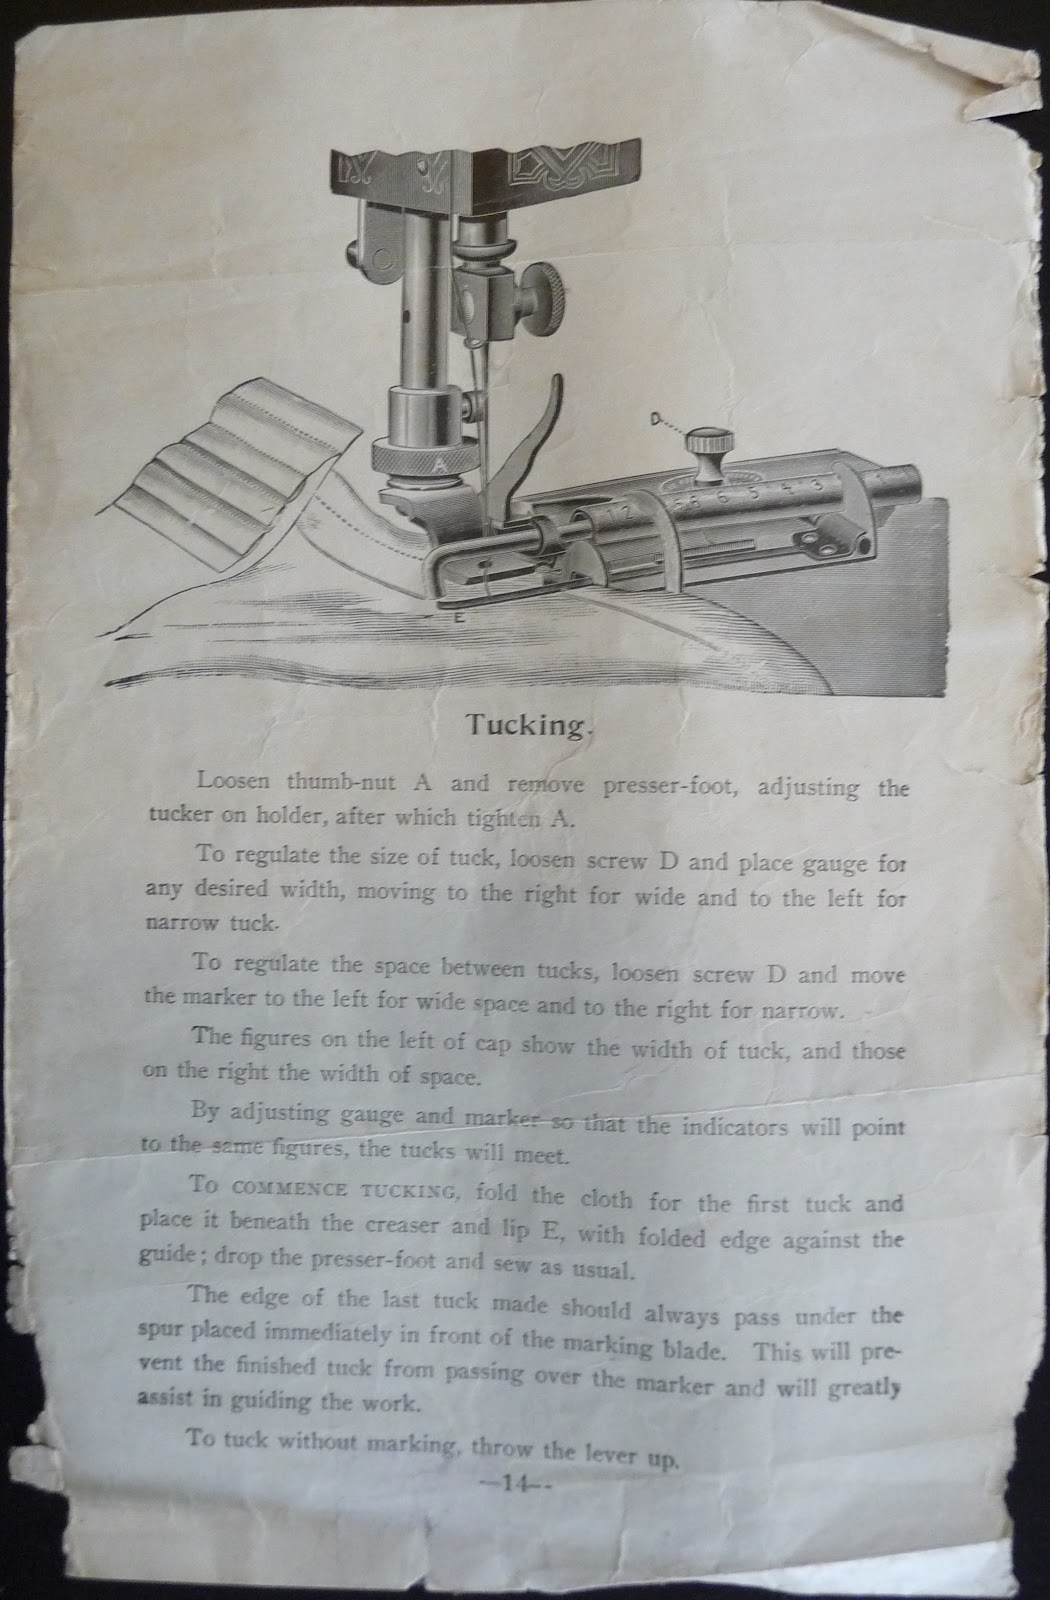 Running Stitches A Verrryyy Old Sewing Machine Manual